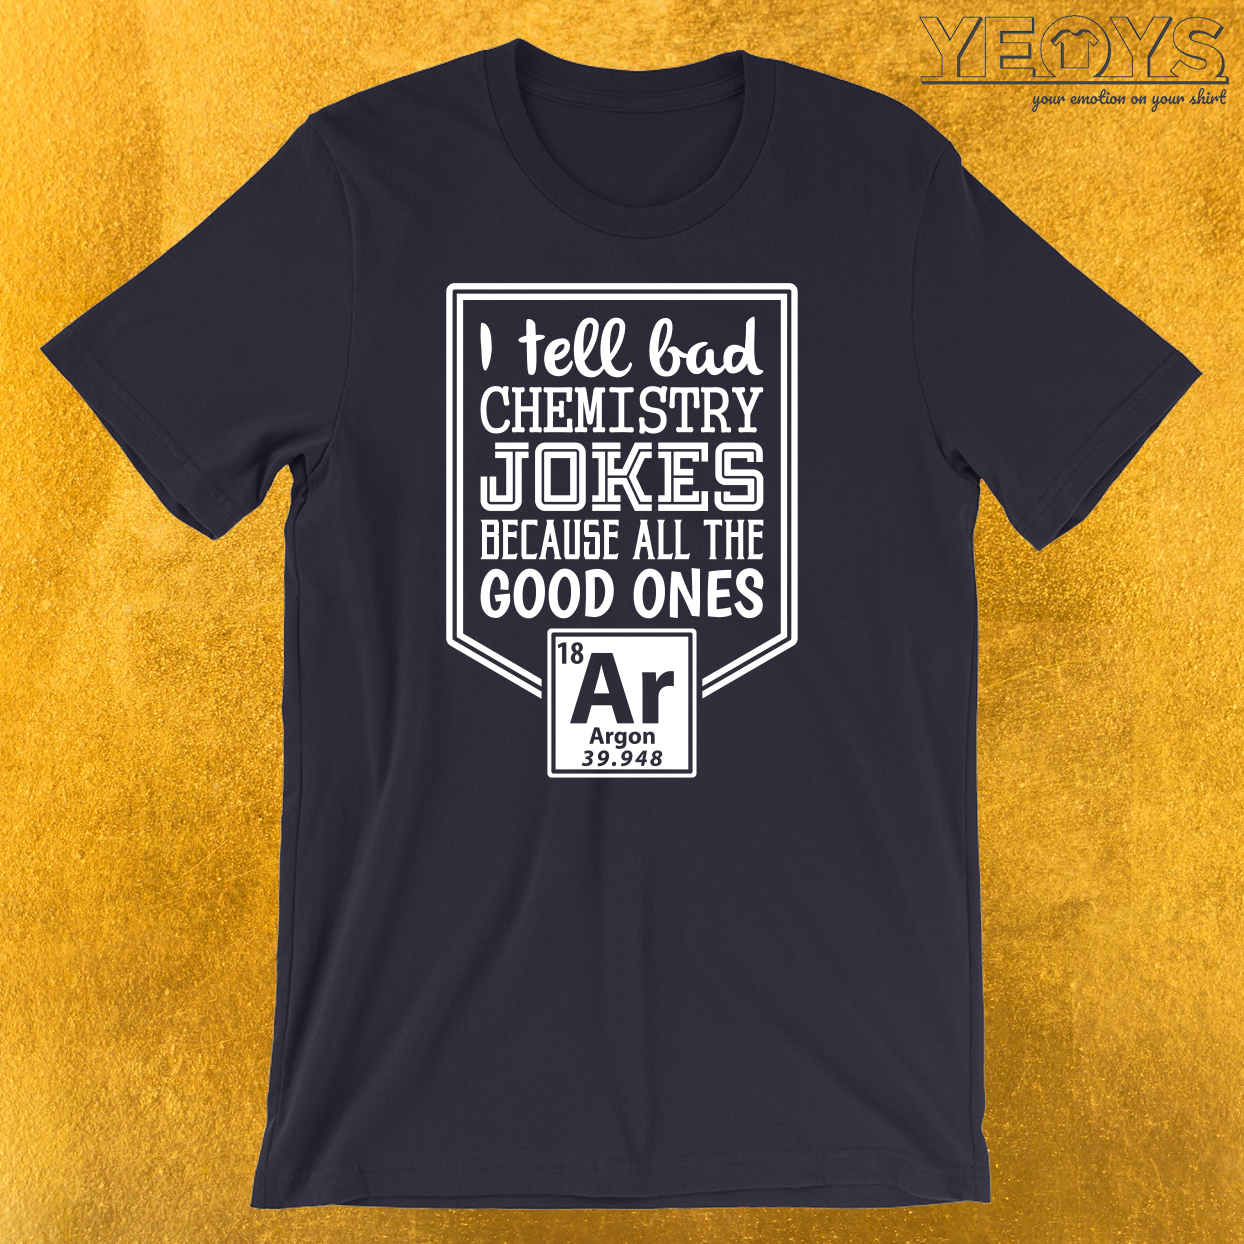 I Tell Bad Chemistry Jokes The Good Ones Argon T-Shirt